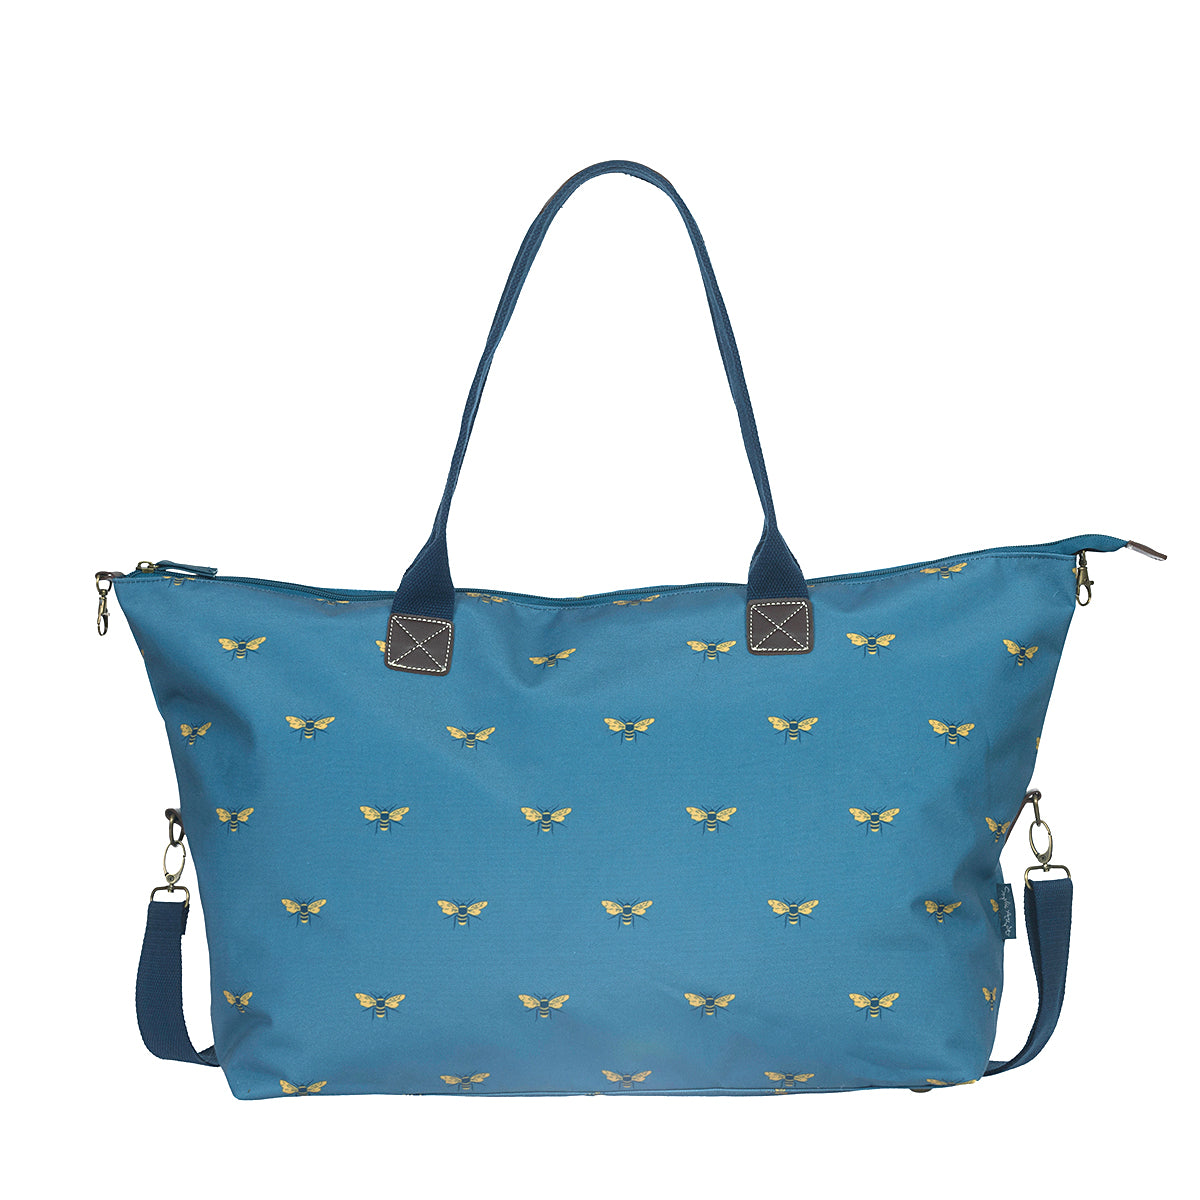 Bees Teal Weekend Oundle Bag by Sophie Allport